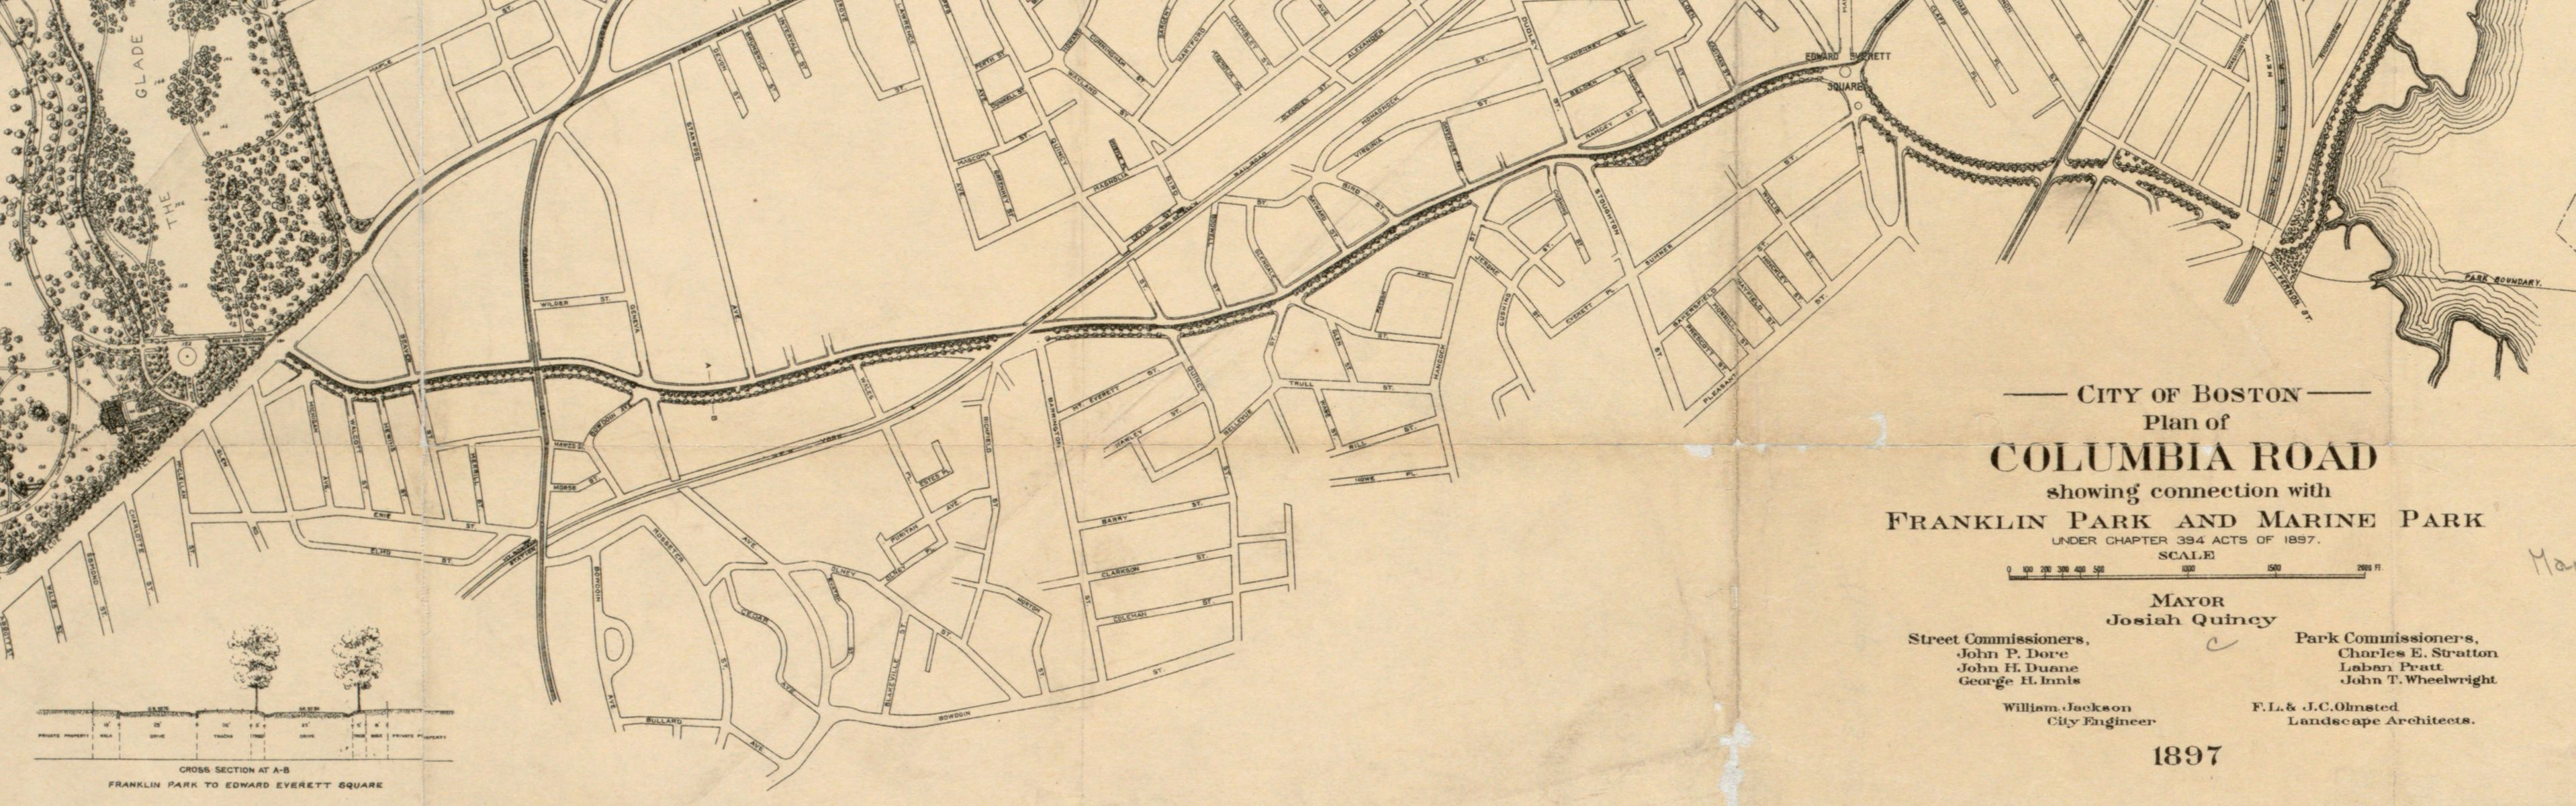 The Olmsted firm's 1897 plan for Columbia Road was never realized